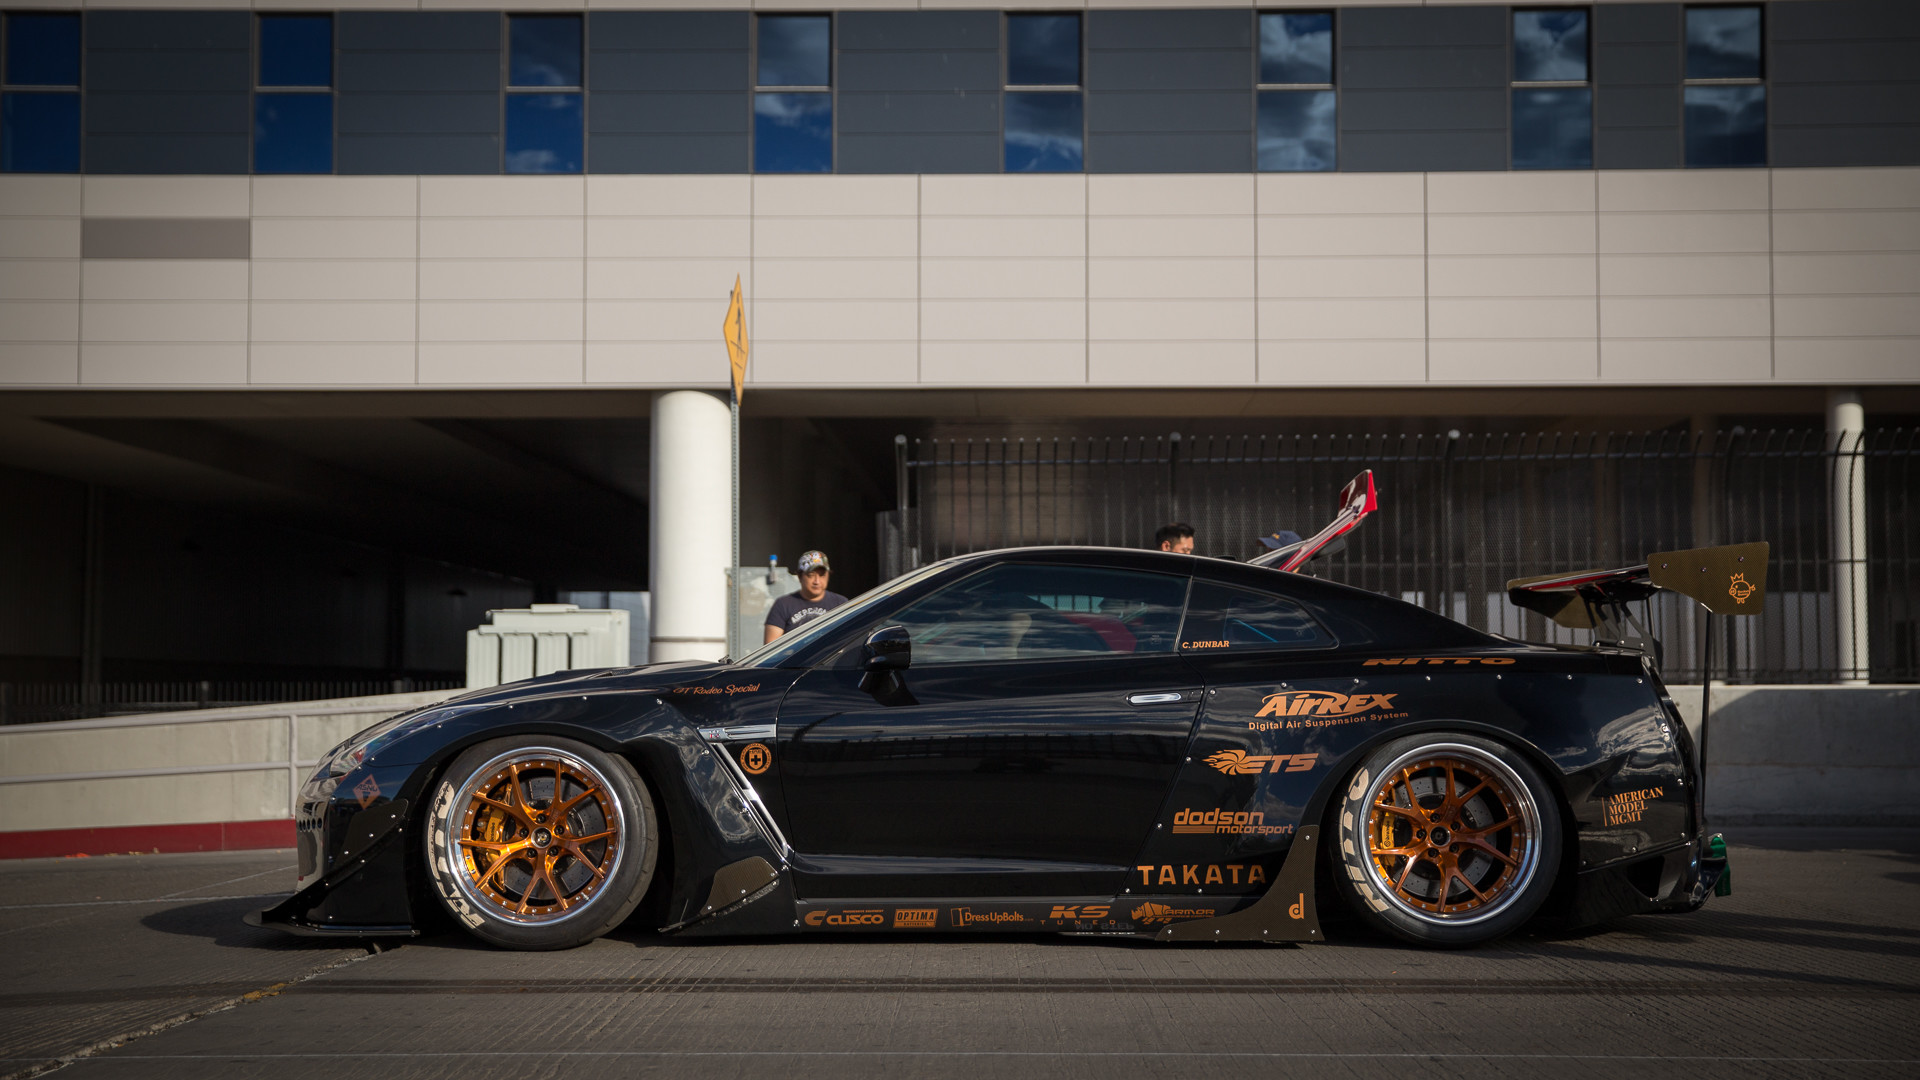 Res: 1920x1080, rocket bunny gtr - Google Search